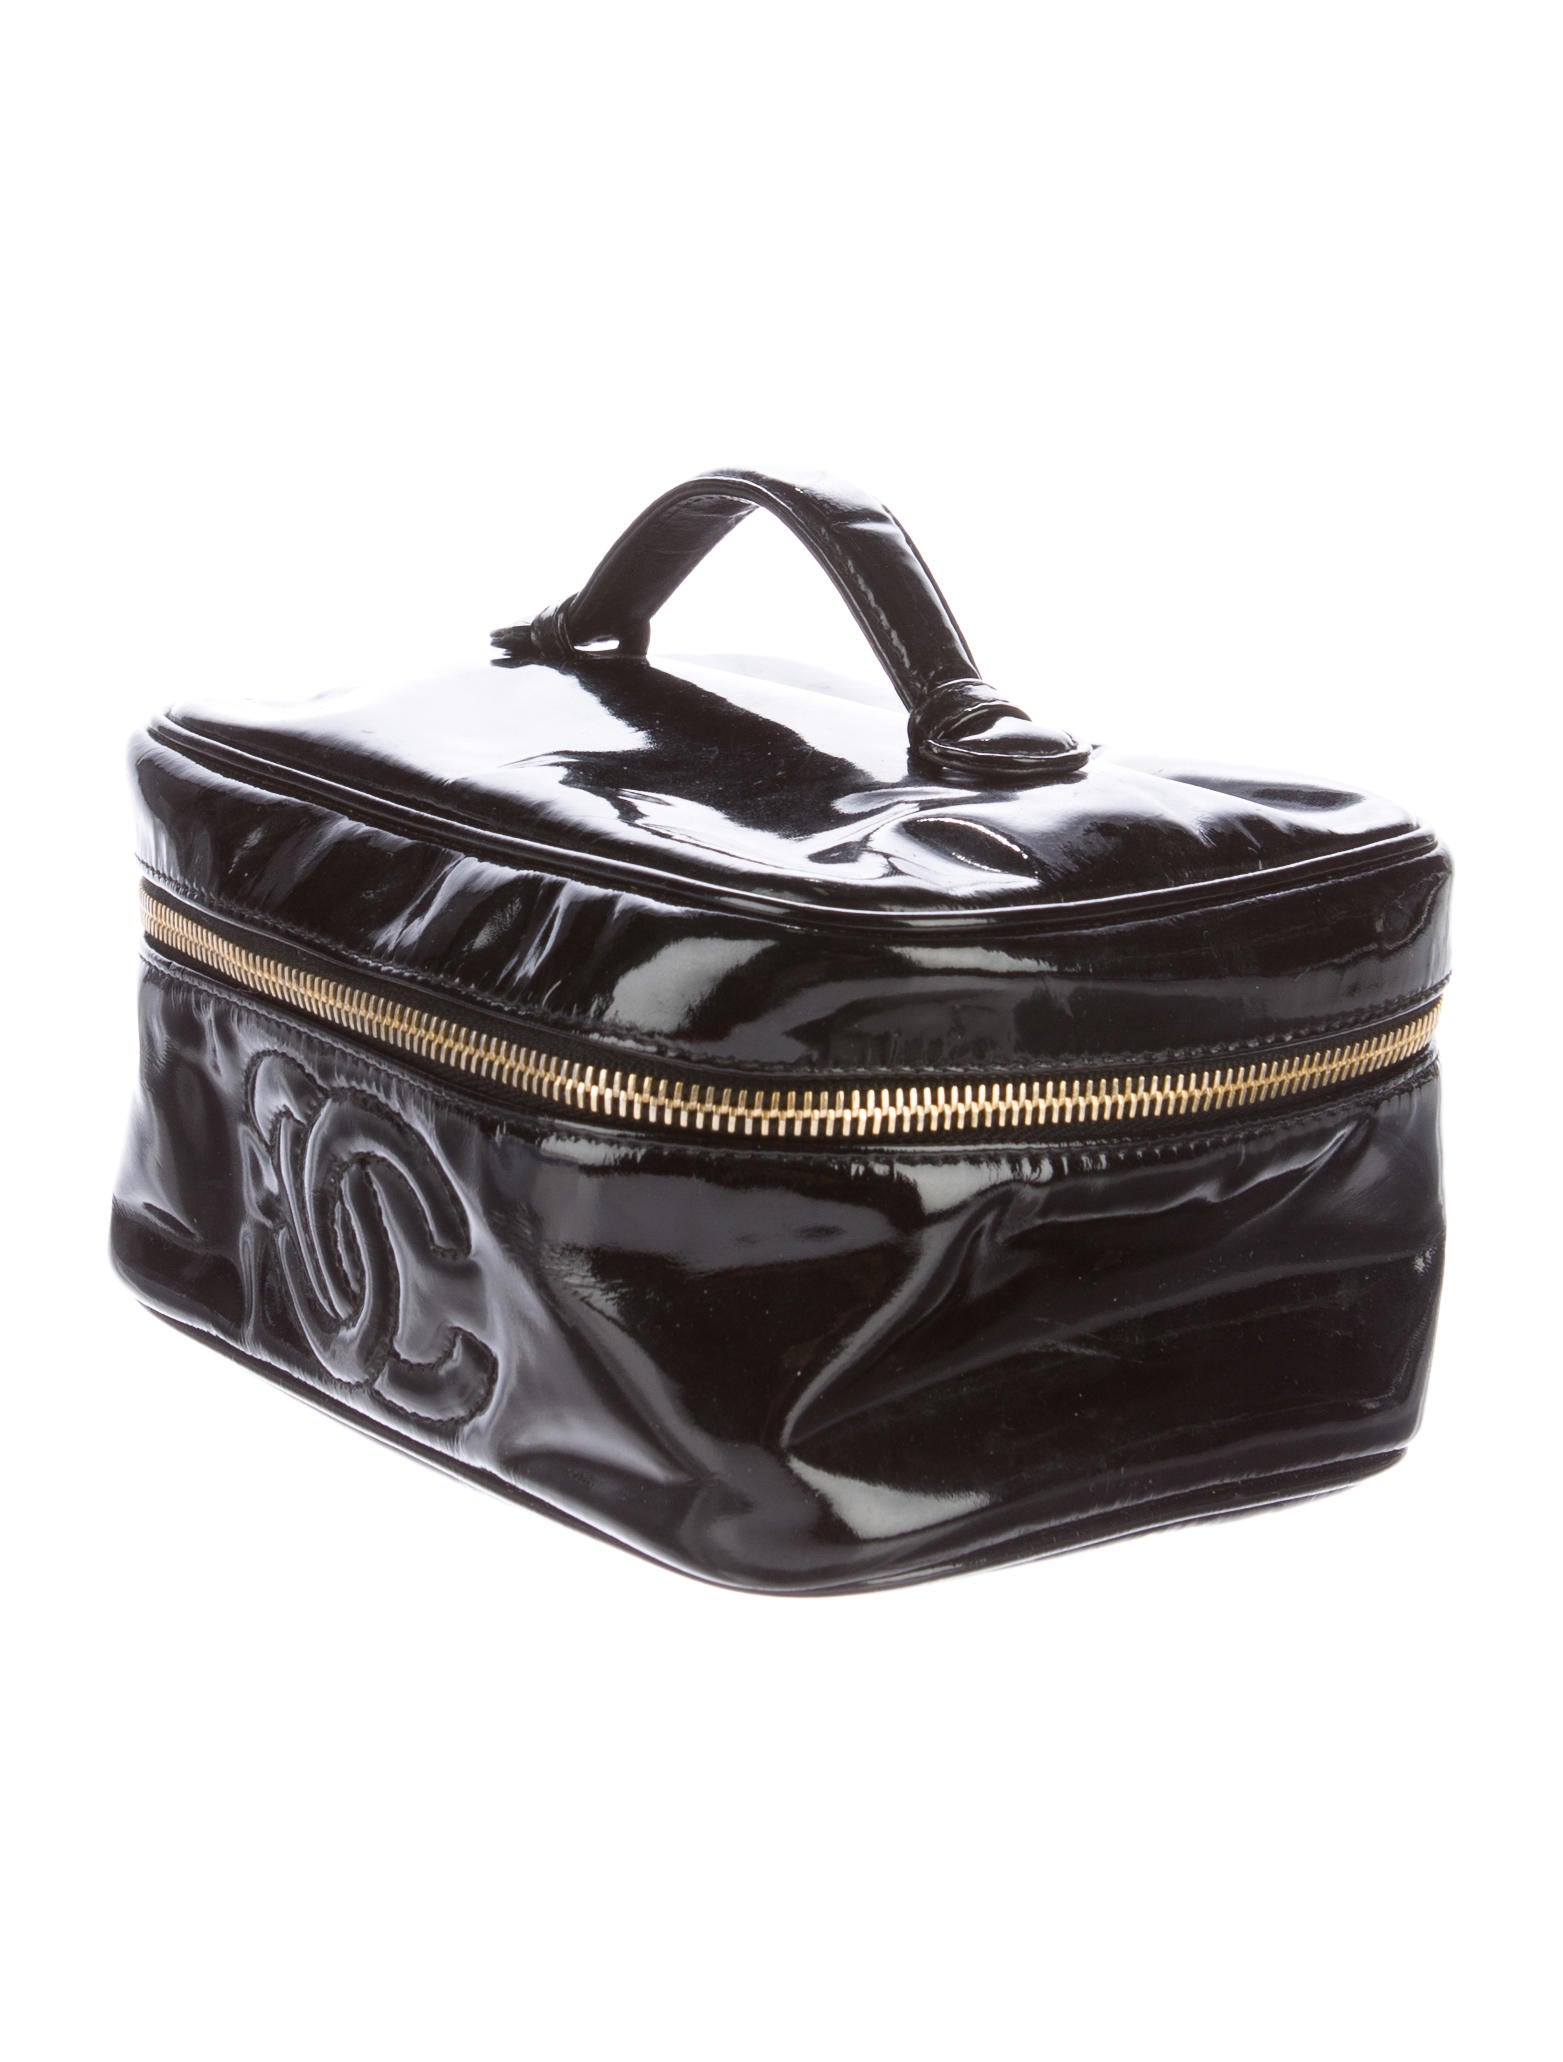 Chanel Patent Leather Vanity Case - Accessories ...